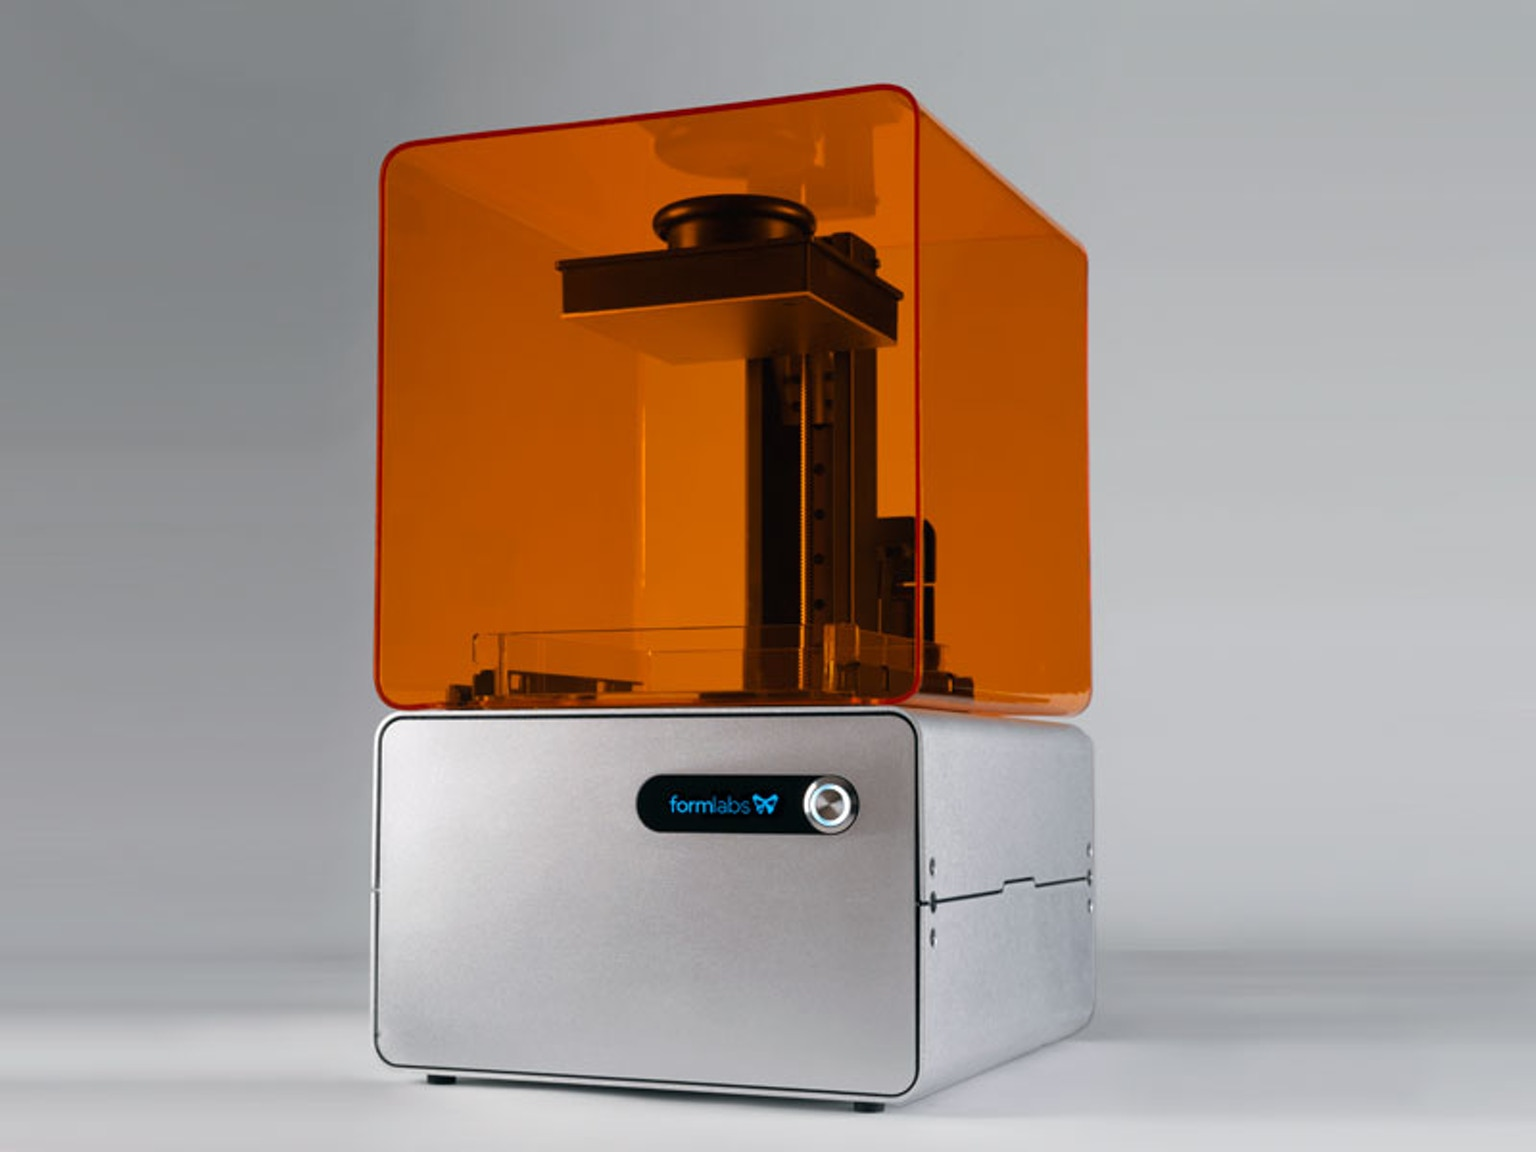 Form 1 an affordable professional 3d printer by formlabs for Furniture 3d printer